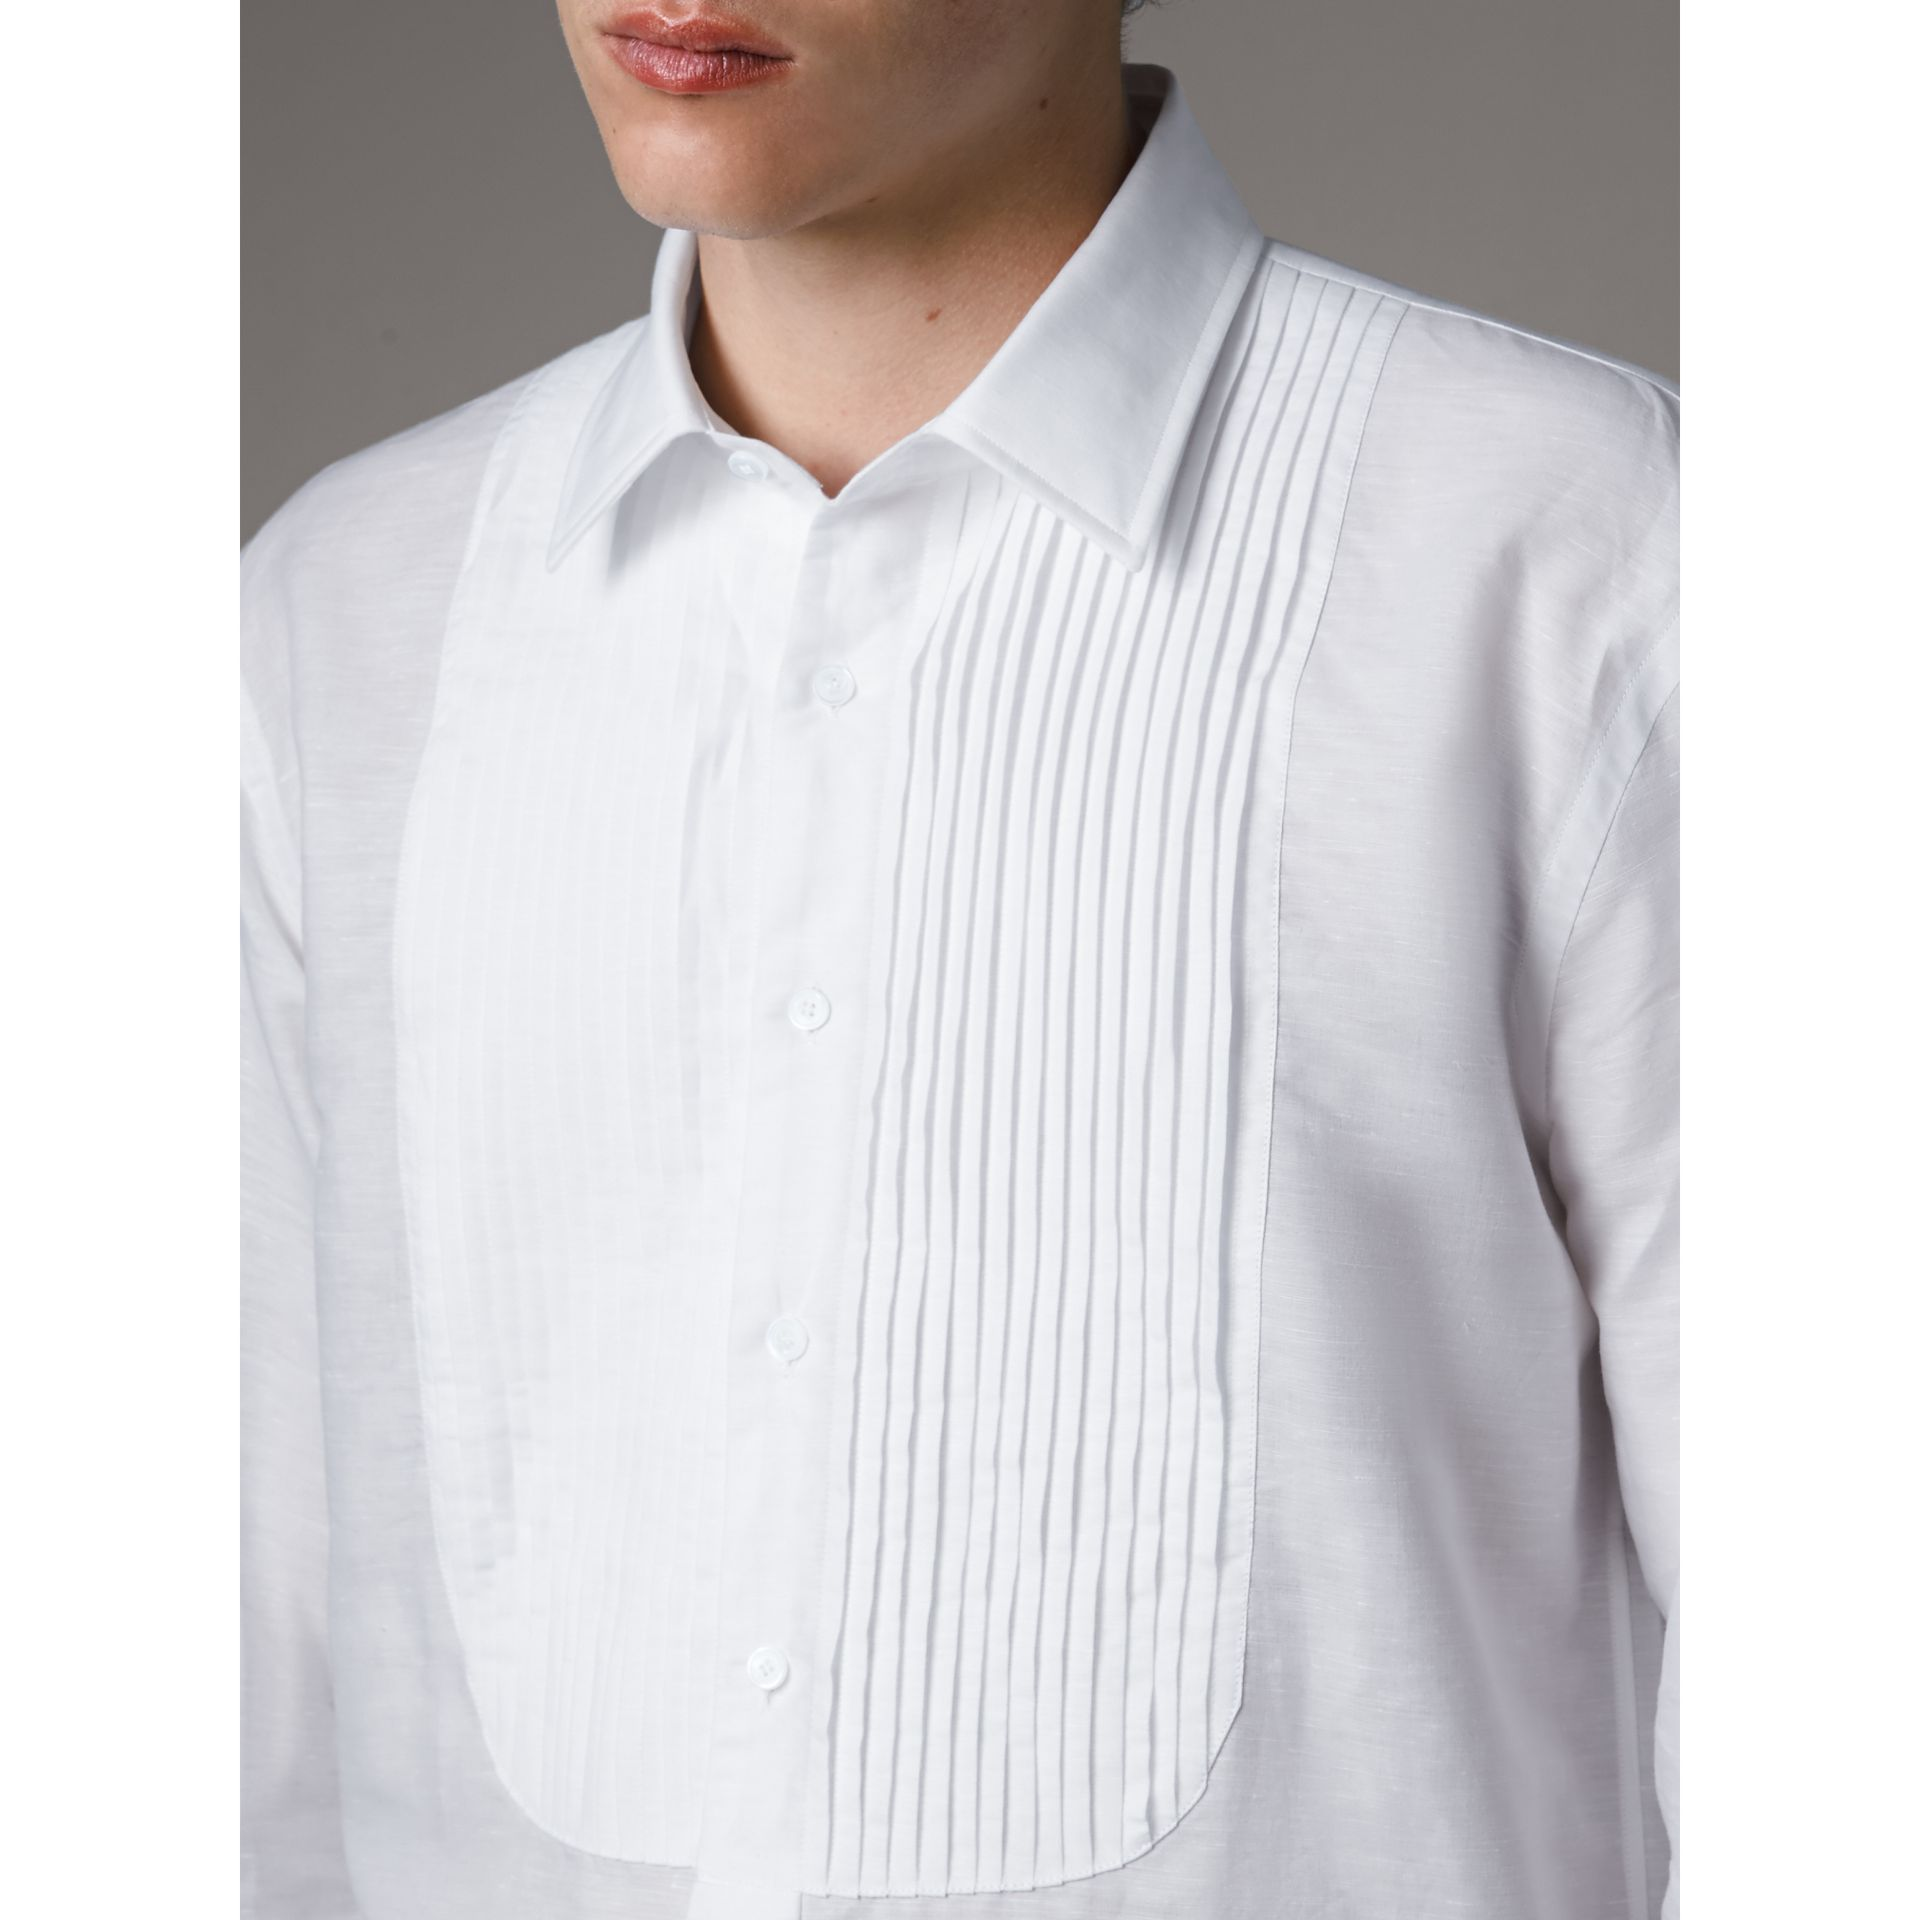 Modern Fit Linen Cotton Dress Shirt in White - Men | Burberry - gallery image 2